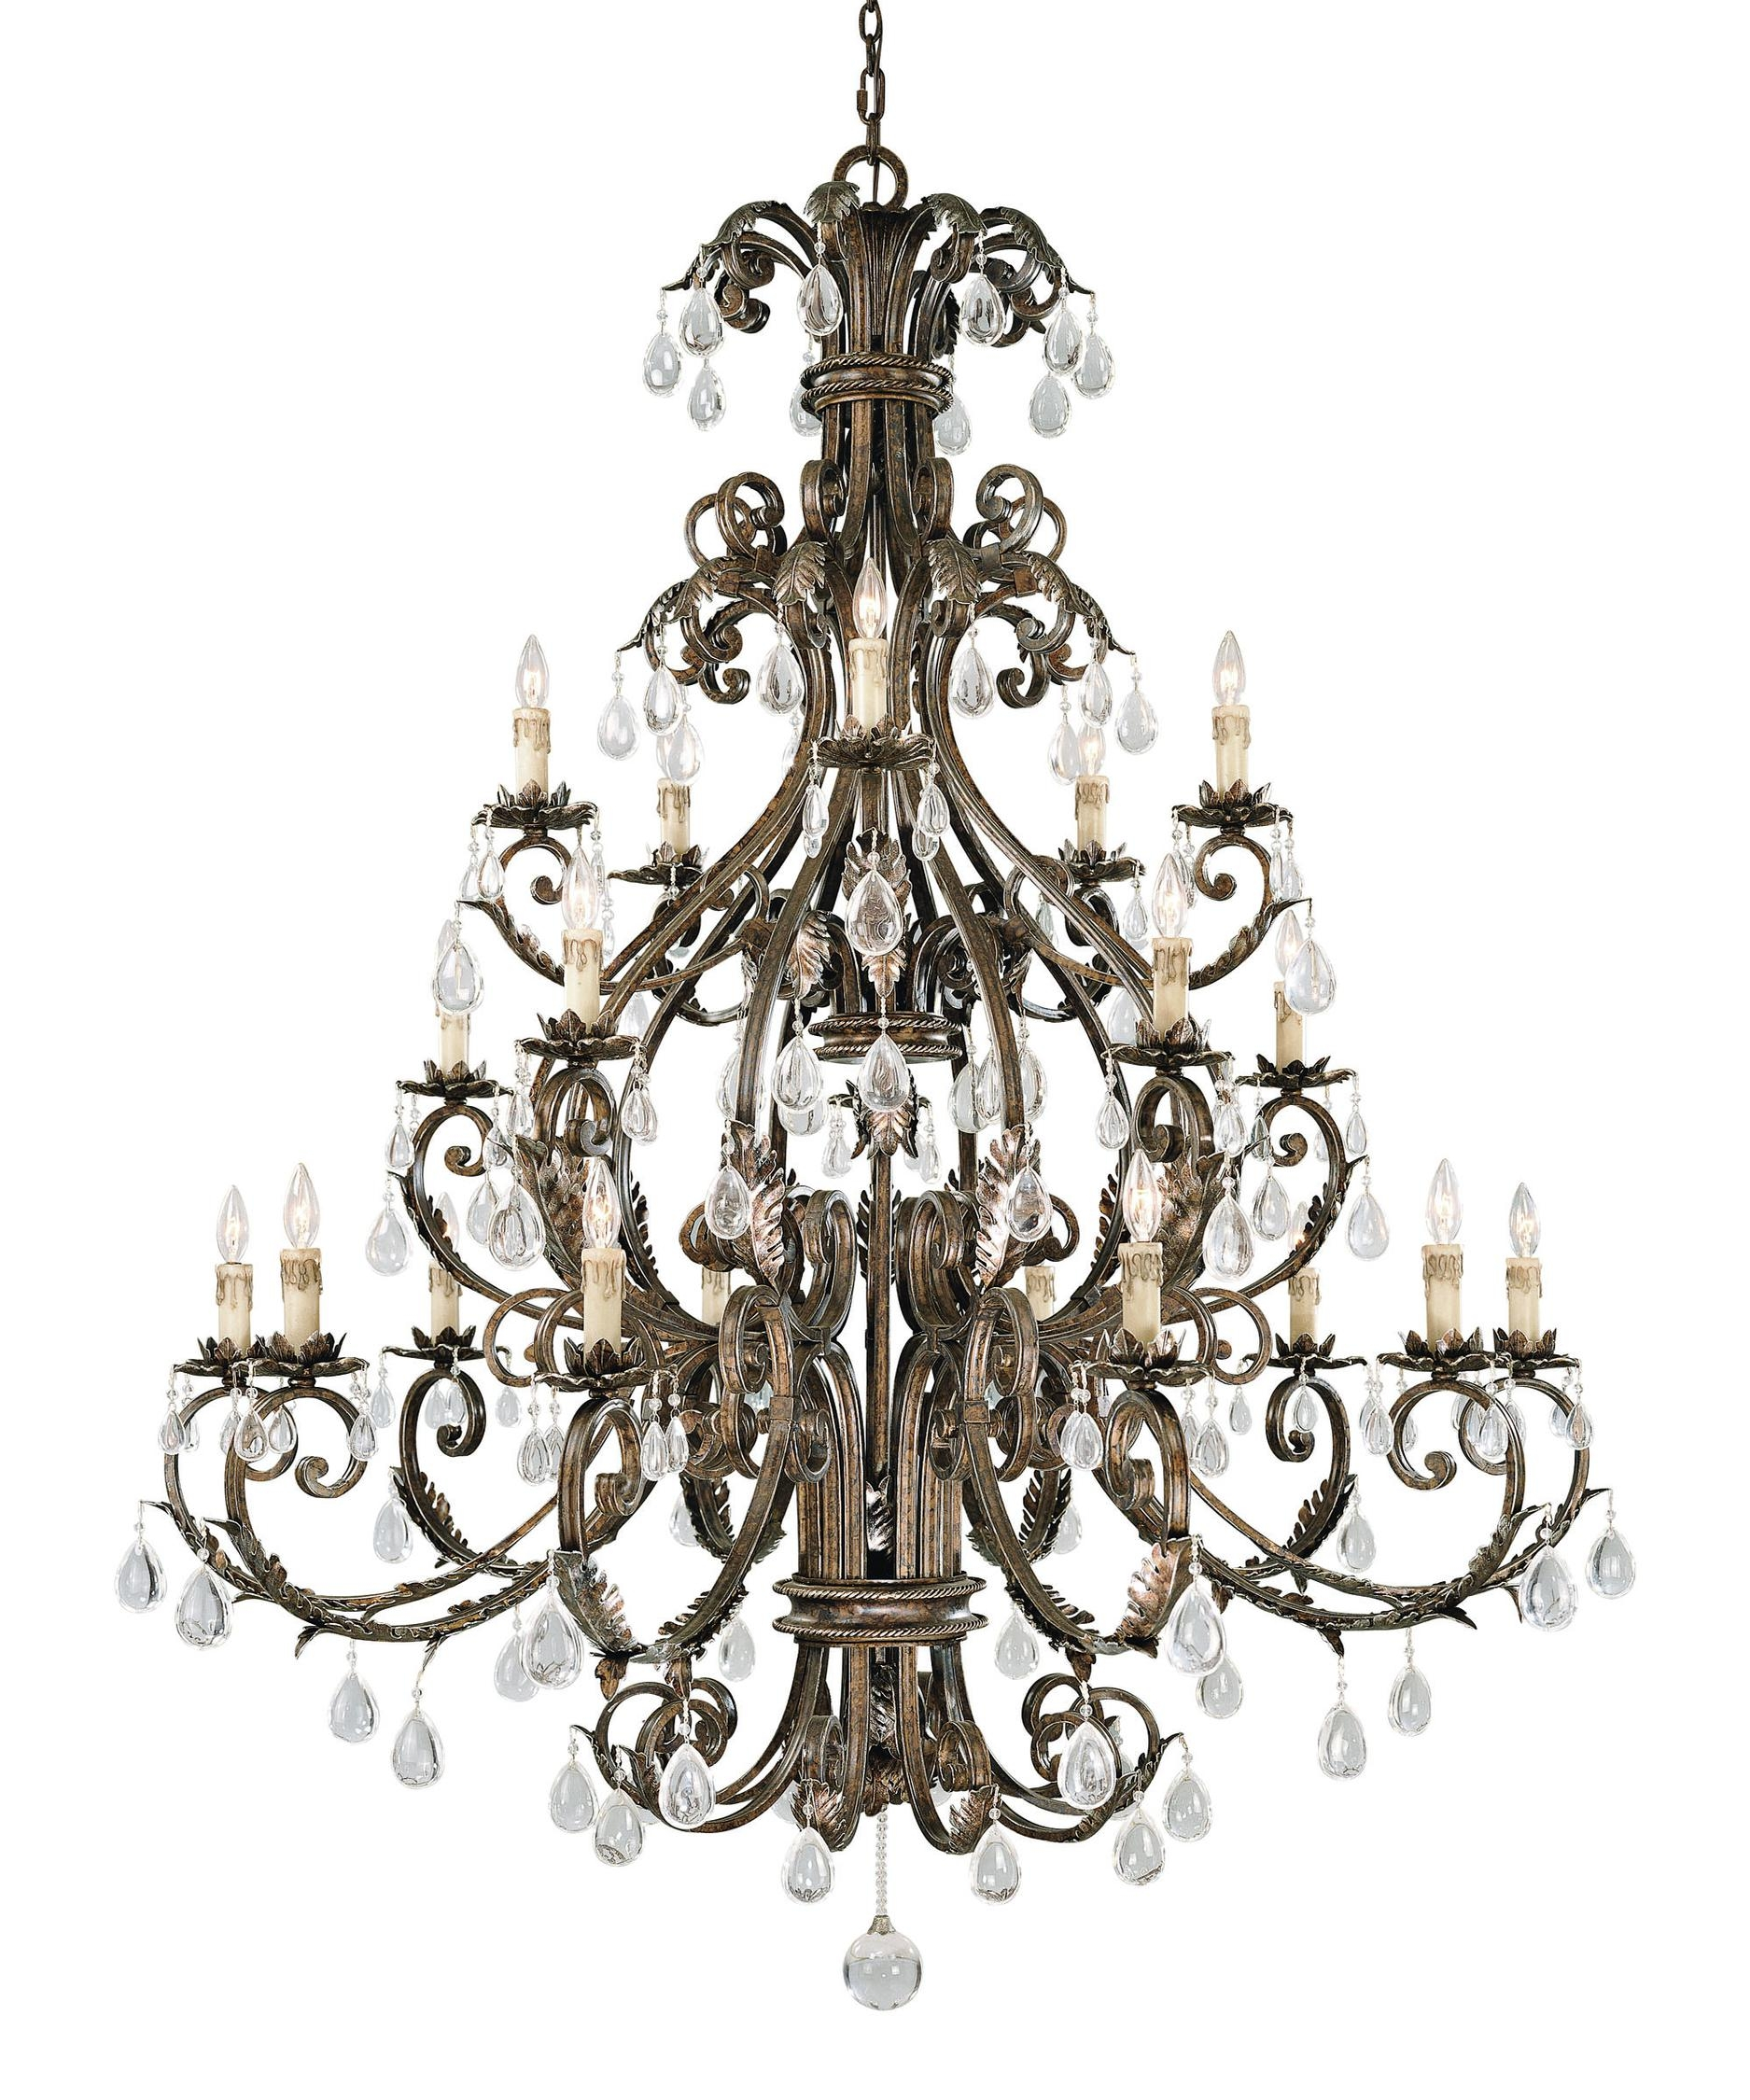 Savoy House 1 5309 20 8 Chastain 57 Inch Wide 20 Light Chandelier In Savoy House Chandeliers (Image 19 of 25)